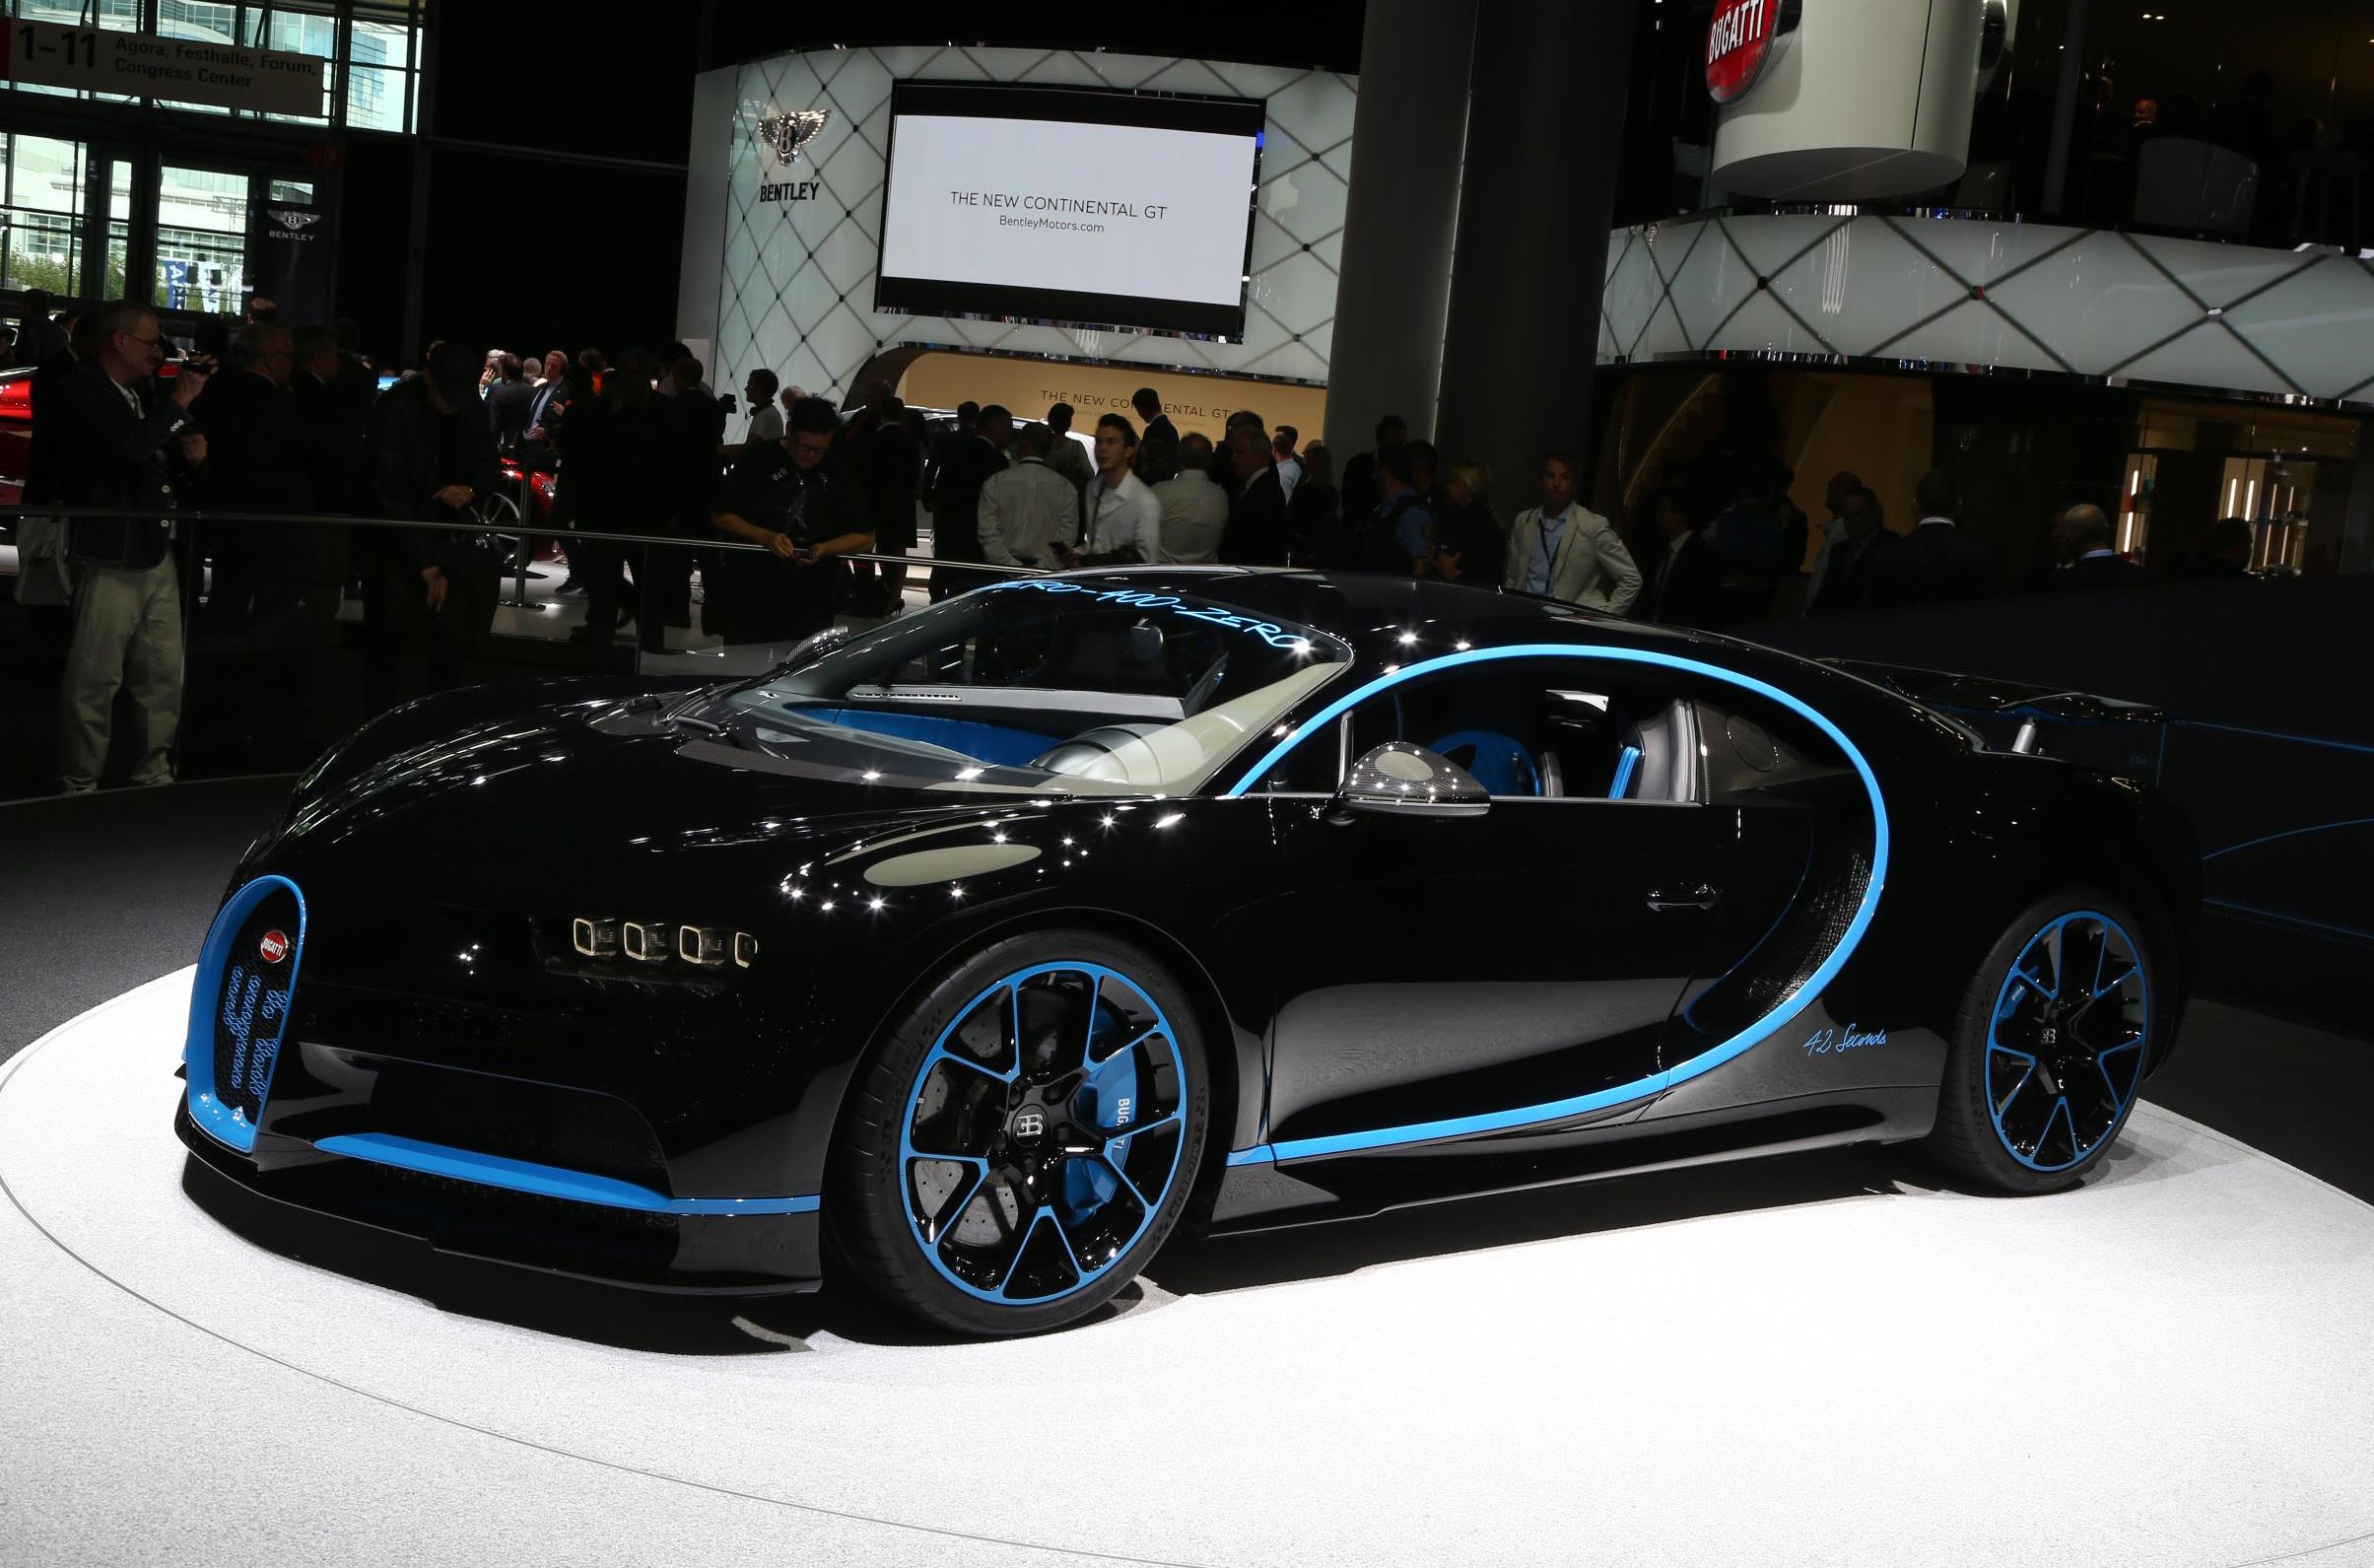 Video suggests Bugatti Chiron can hit 273 miles per hour